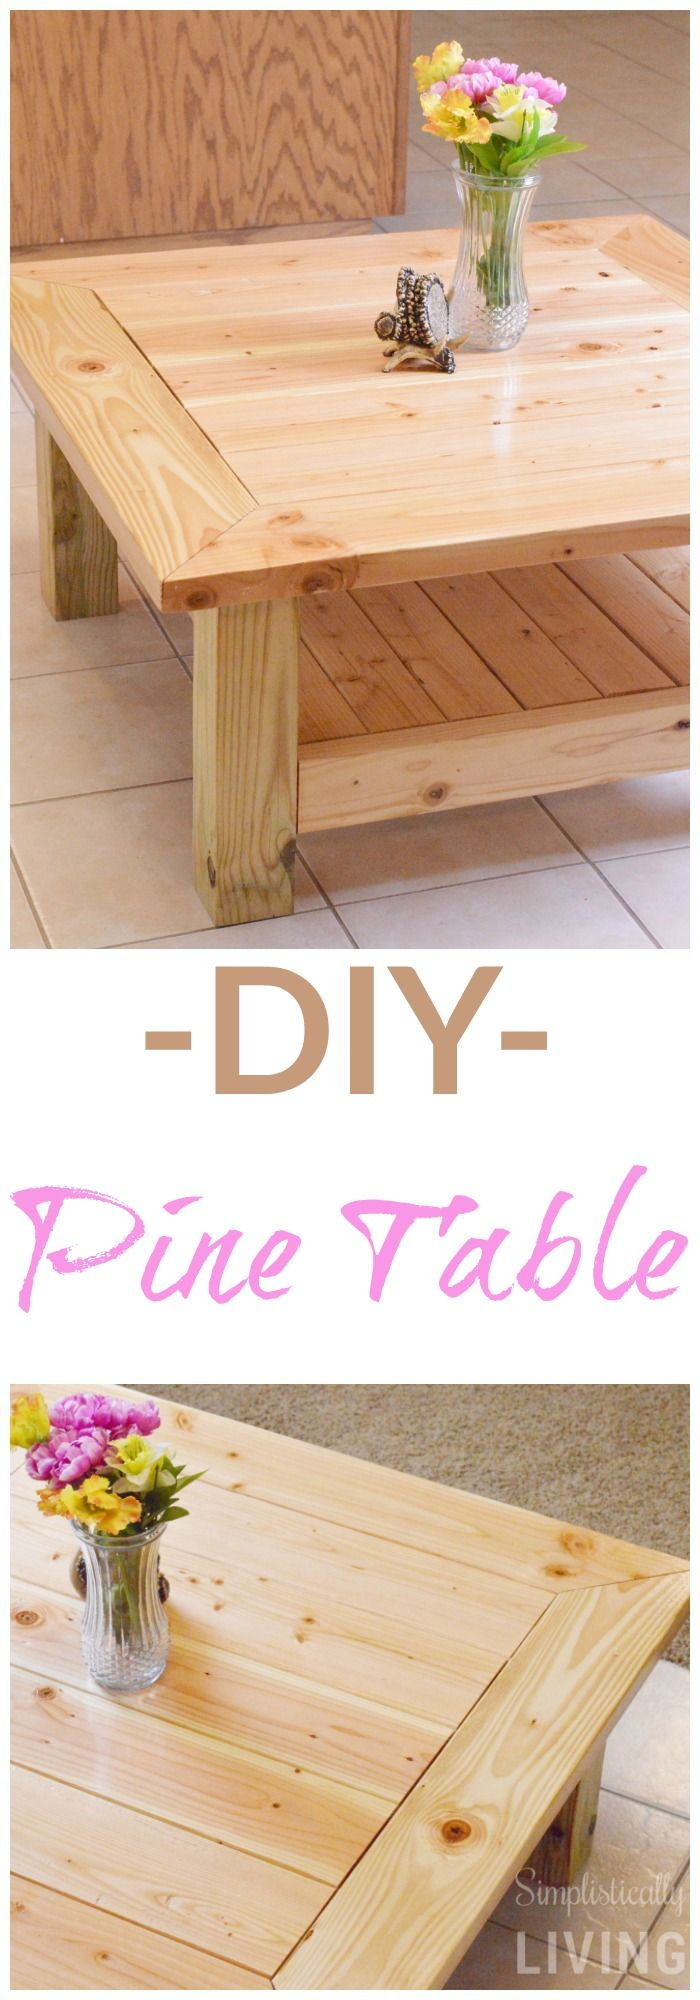 DIY Pine Table Simplistically Living